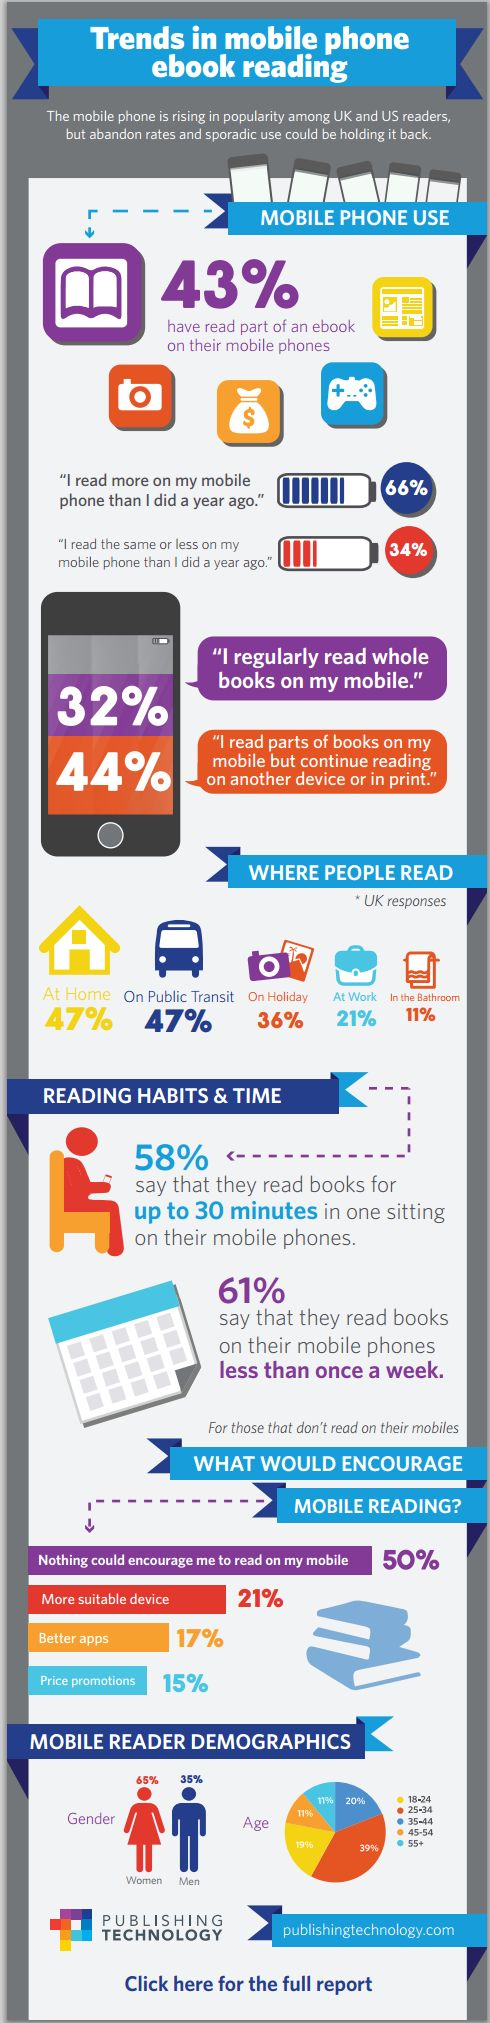 Trens in mobile phone ebook reading